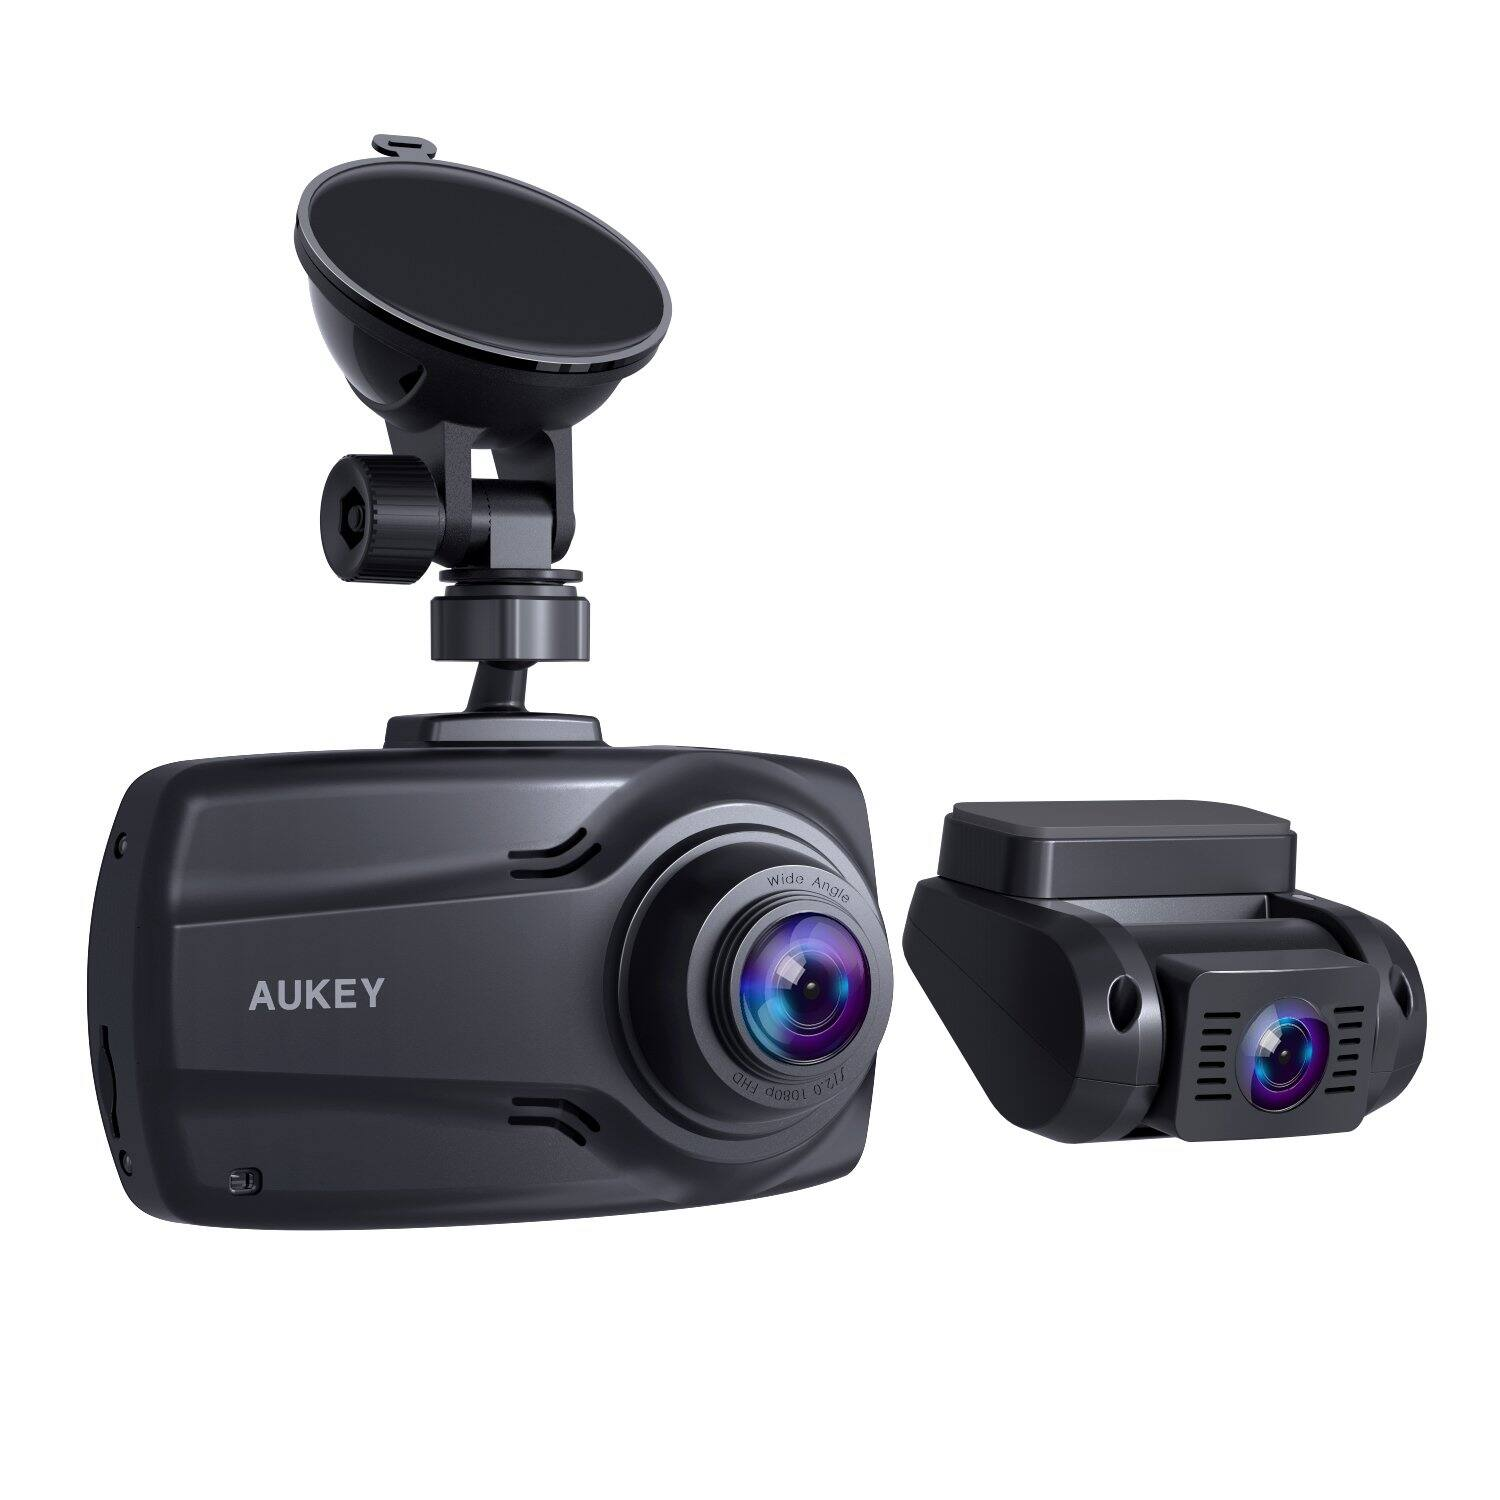 Aukey DR03 Supercapacitor 1080p Front and Rear Dash Cameras $75 + free s/h